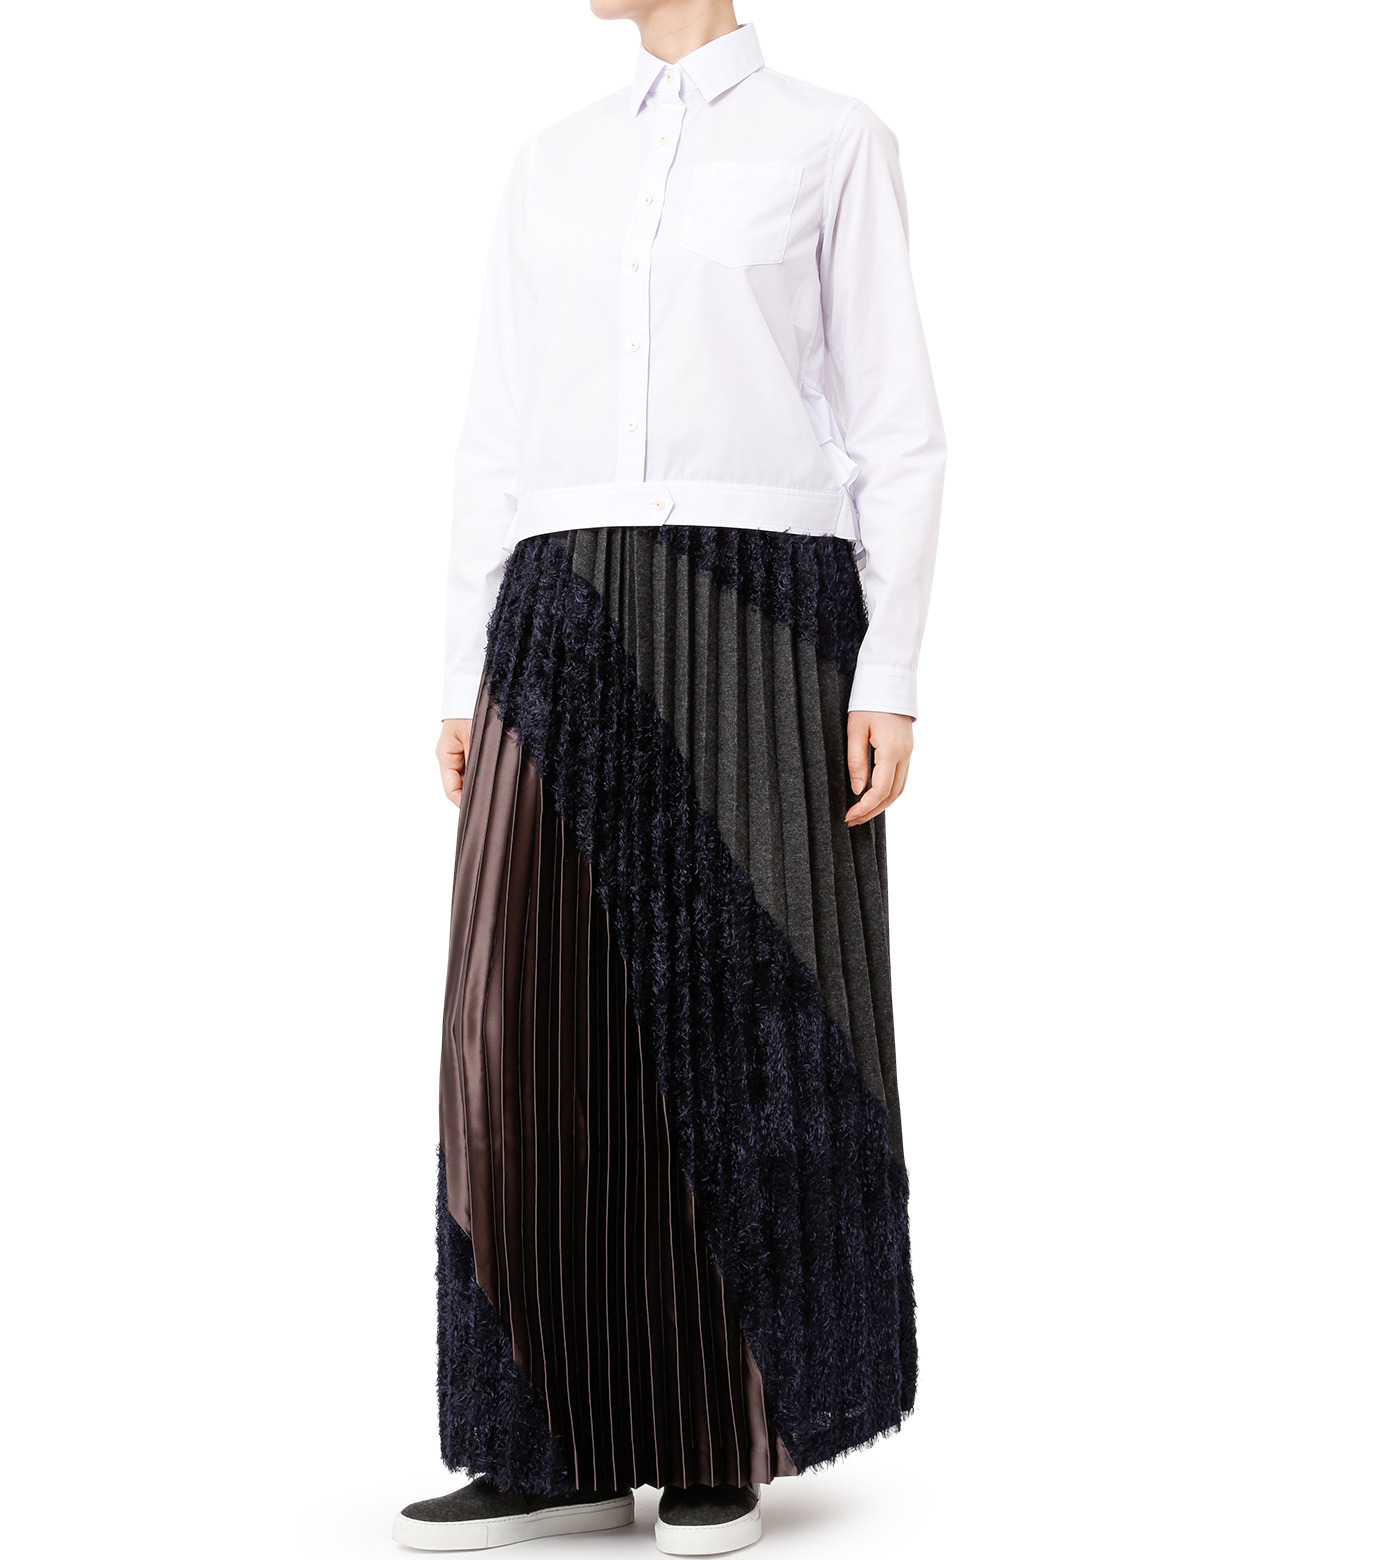 KOLOR(カラー)のLong Pleated Skirt Mixed Jacquard-NAVY(スカート/skirt)-16WCL-S03129-93 拡大詳細画像3